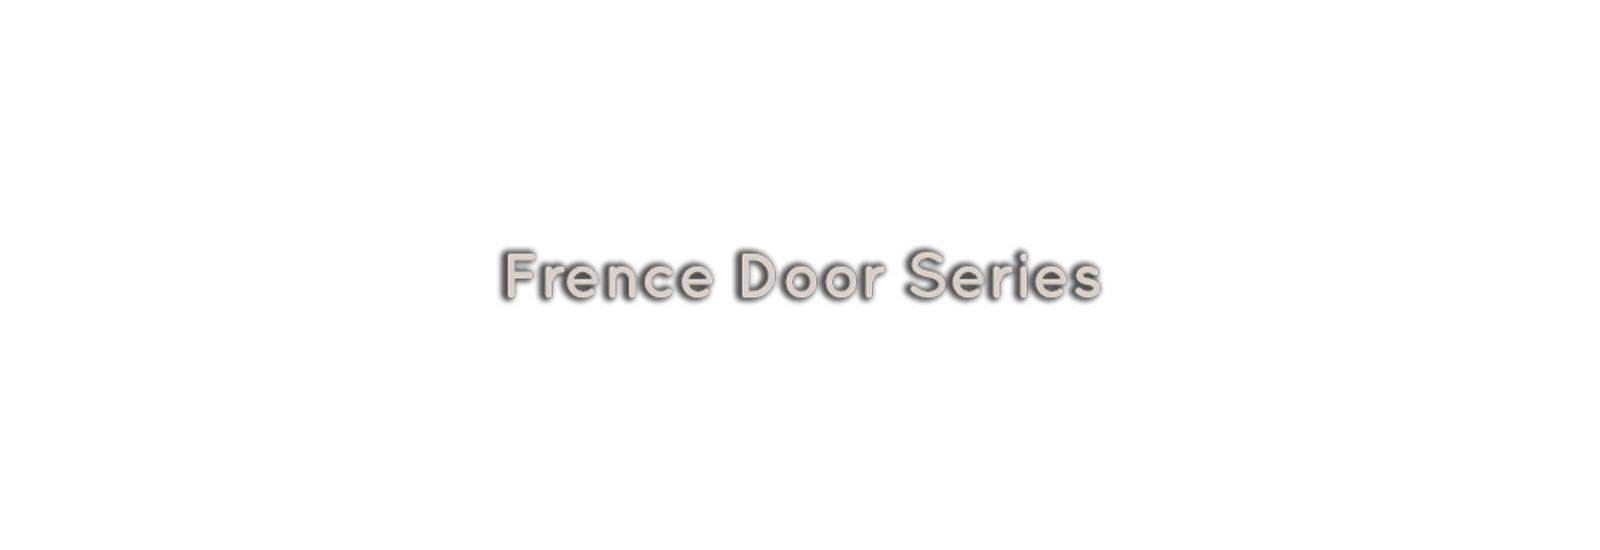 French Door Series